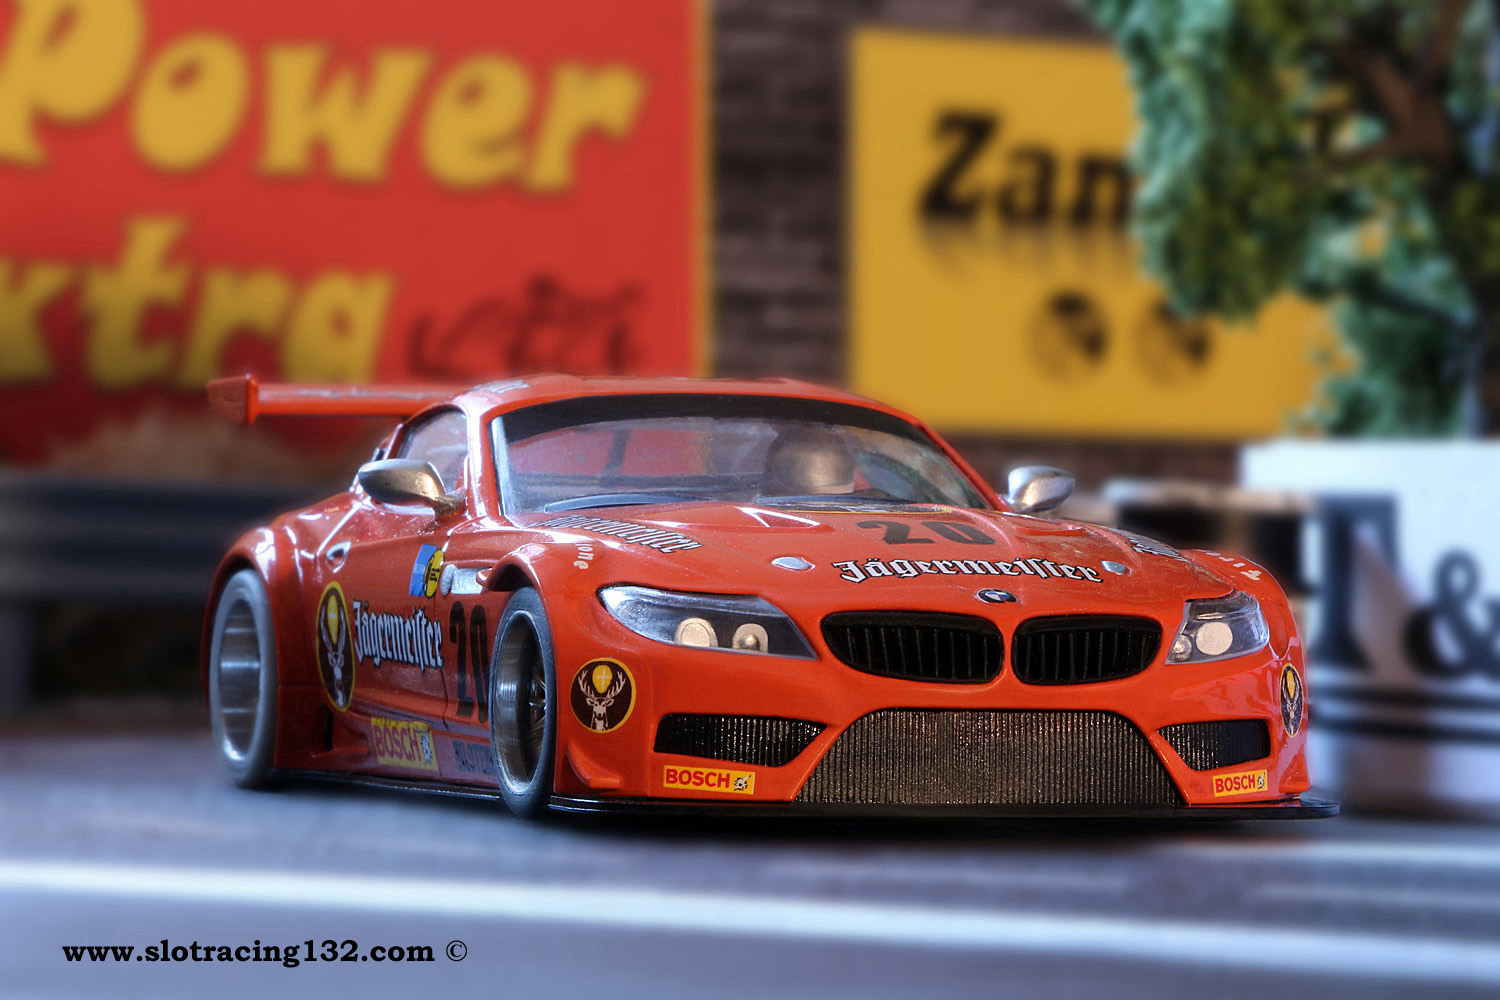 Cars That Start With J >> Slotcars 1:32 Slotracing Carrera Racecourse / News - Brand ...